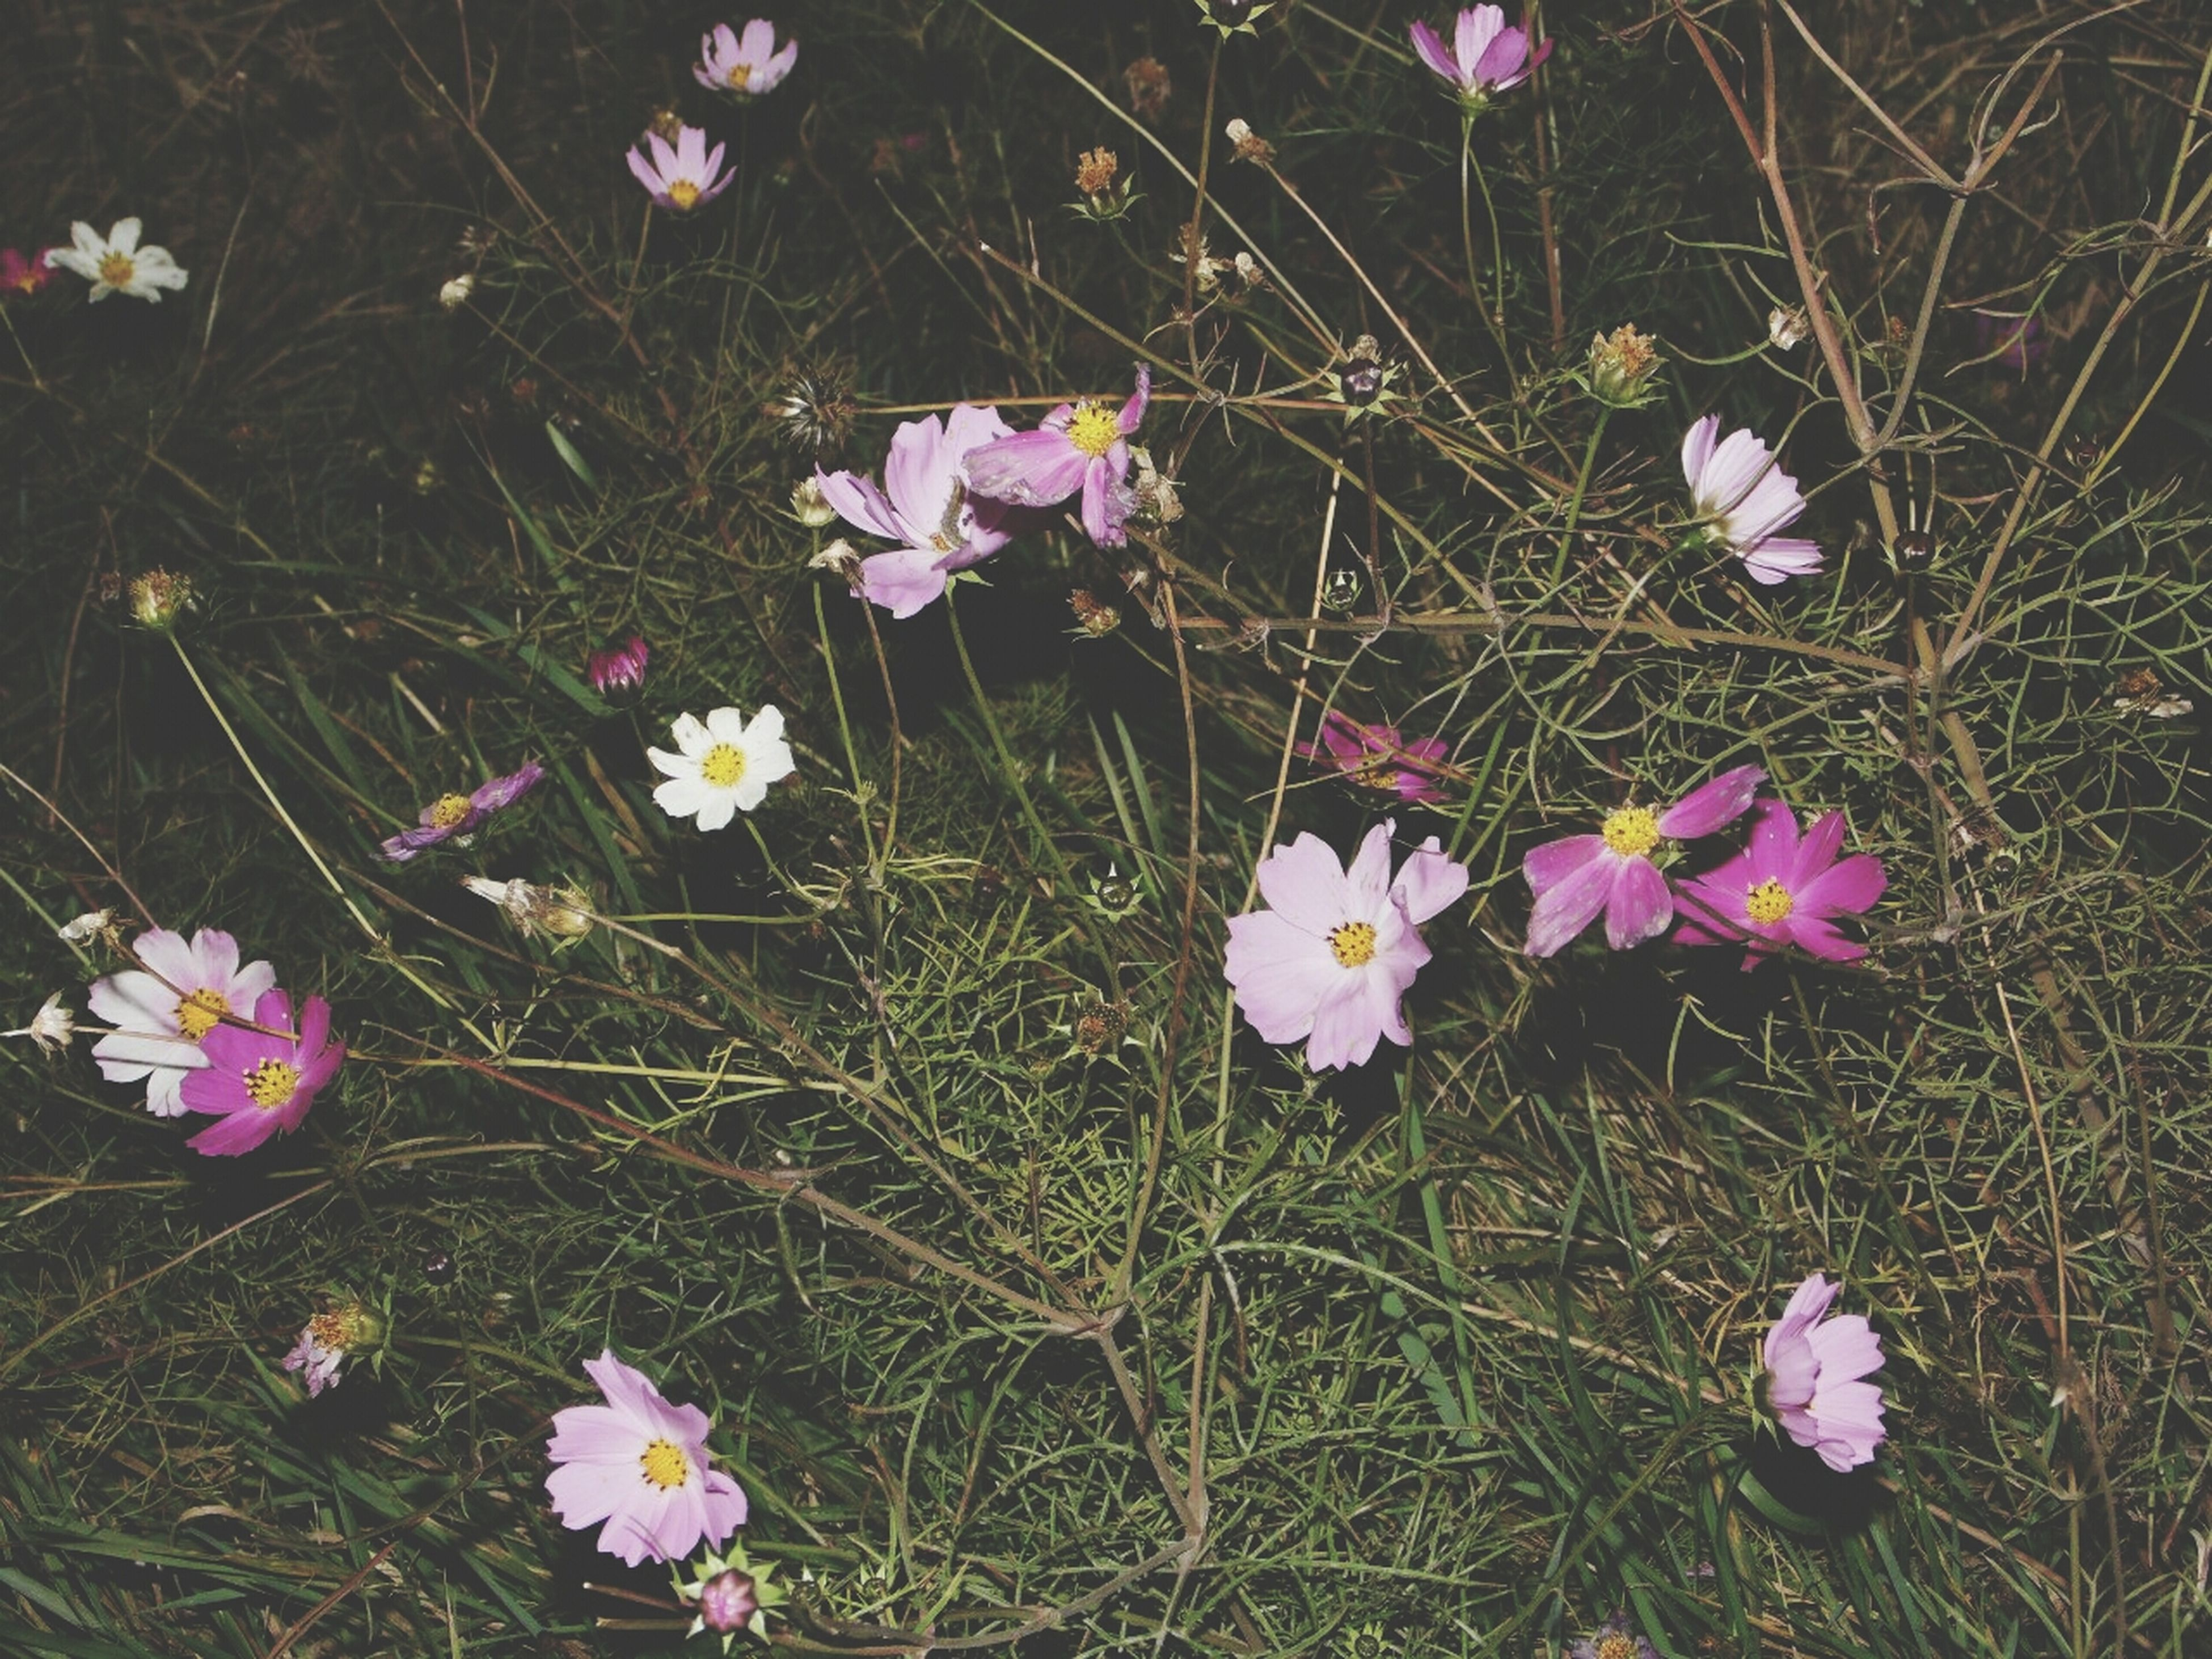 flower, freshness, petal, fragility, growth, beauty in nature, grass, field, flower head, blooming, nature, plant, pink color, high angle view, in bloom, meadow, stem, blossom, purple, day